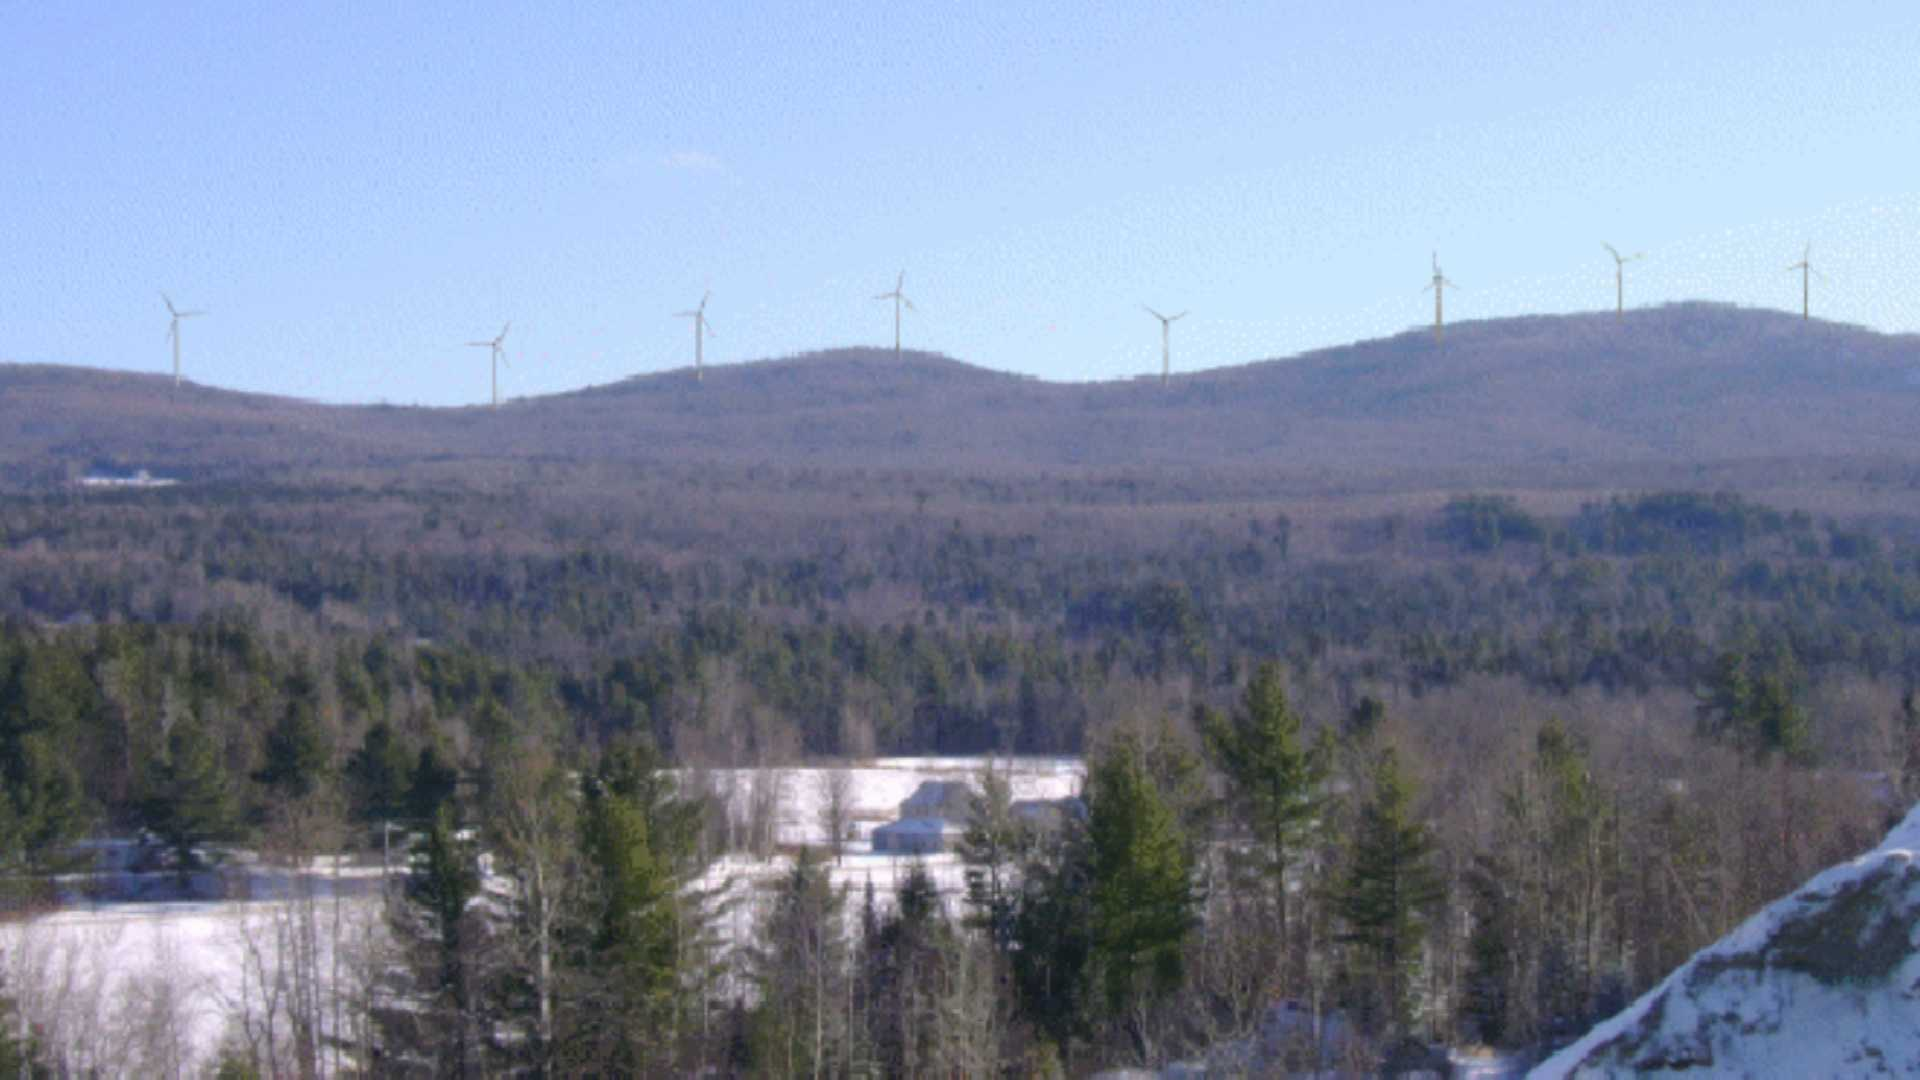 A rendering of the Lowell Wind Project after completion.